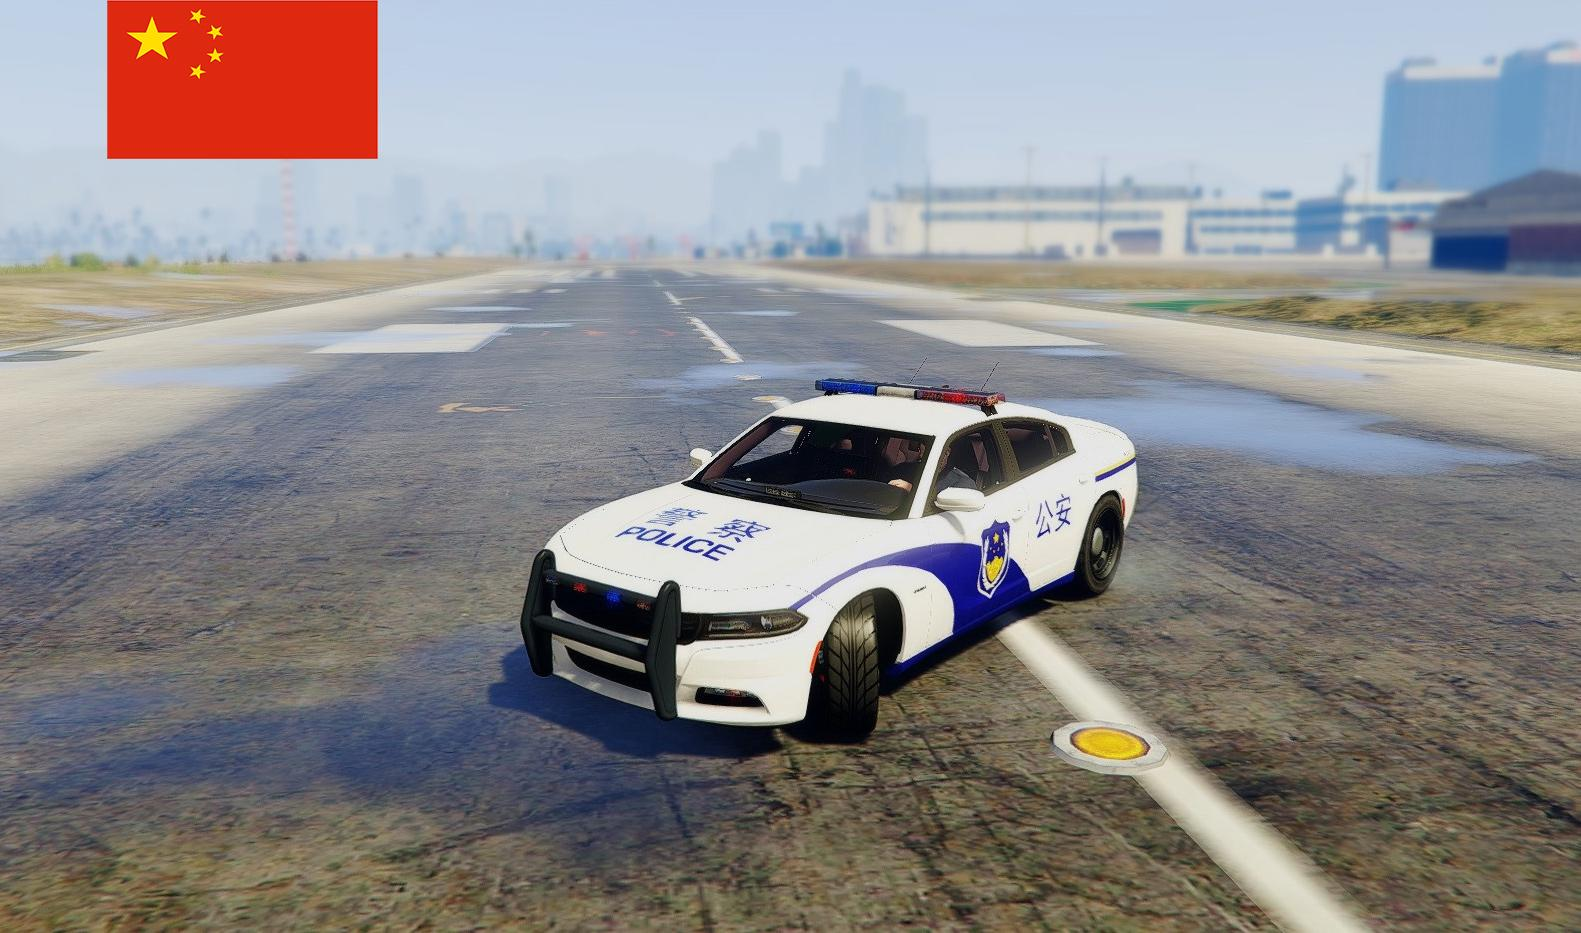 2015 Dodge Charger Rt Chinese Police 道奇挑战者中国警车 Gta5